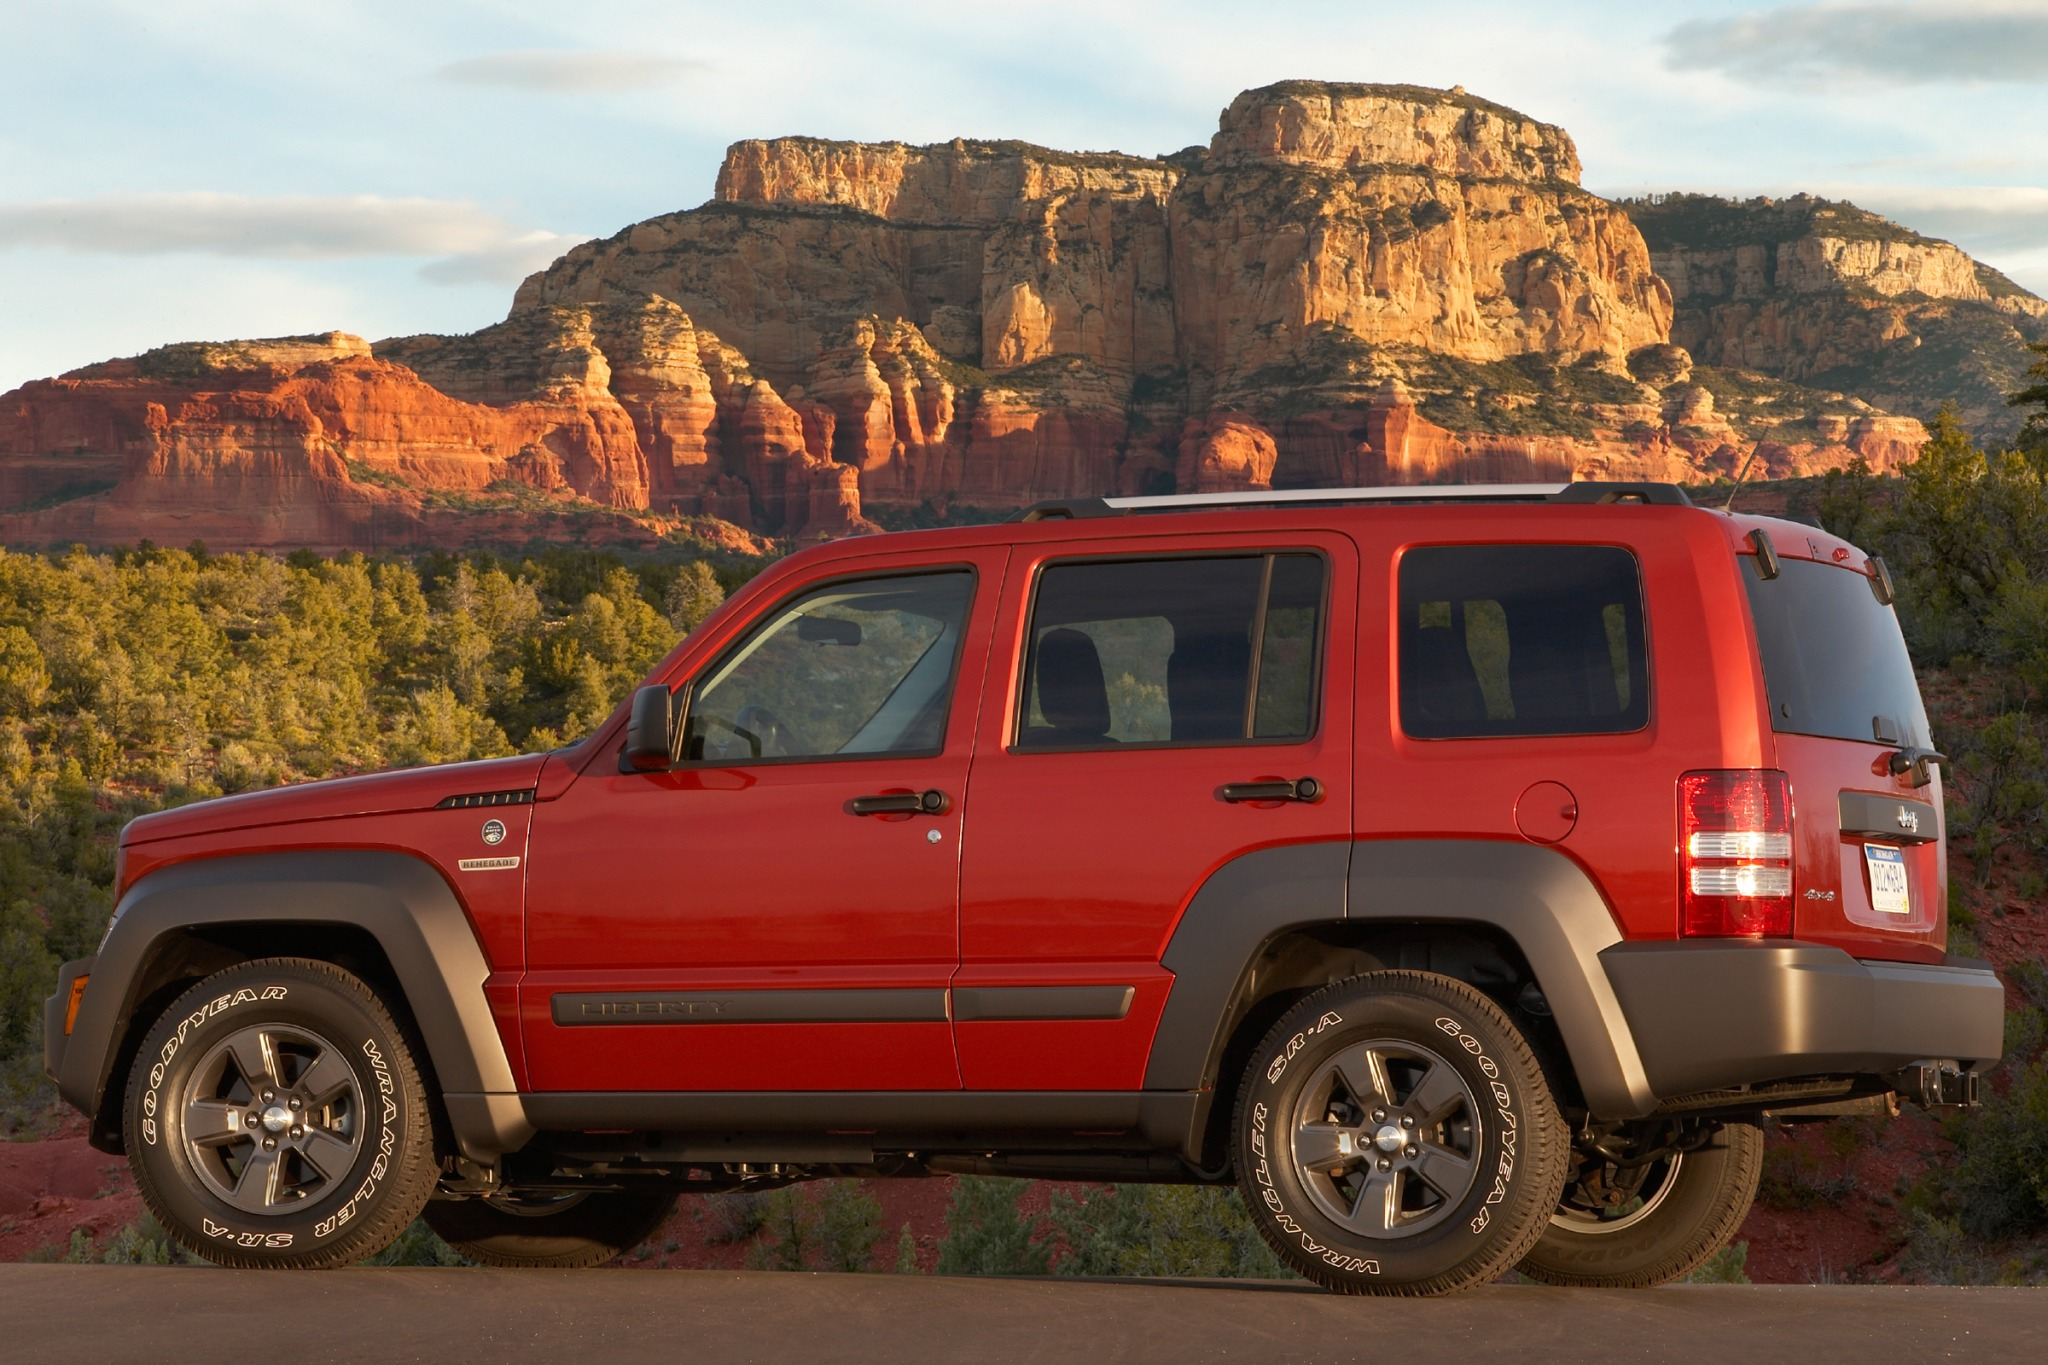 2010 Jeep Liberty Limited interior #5